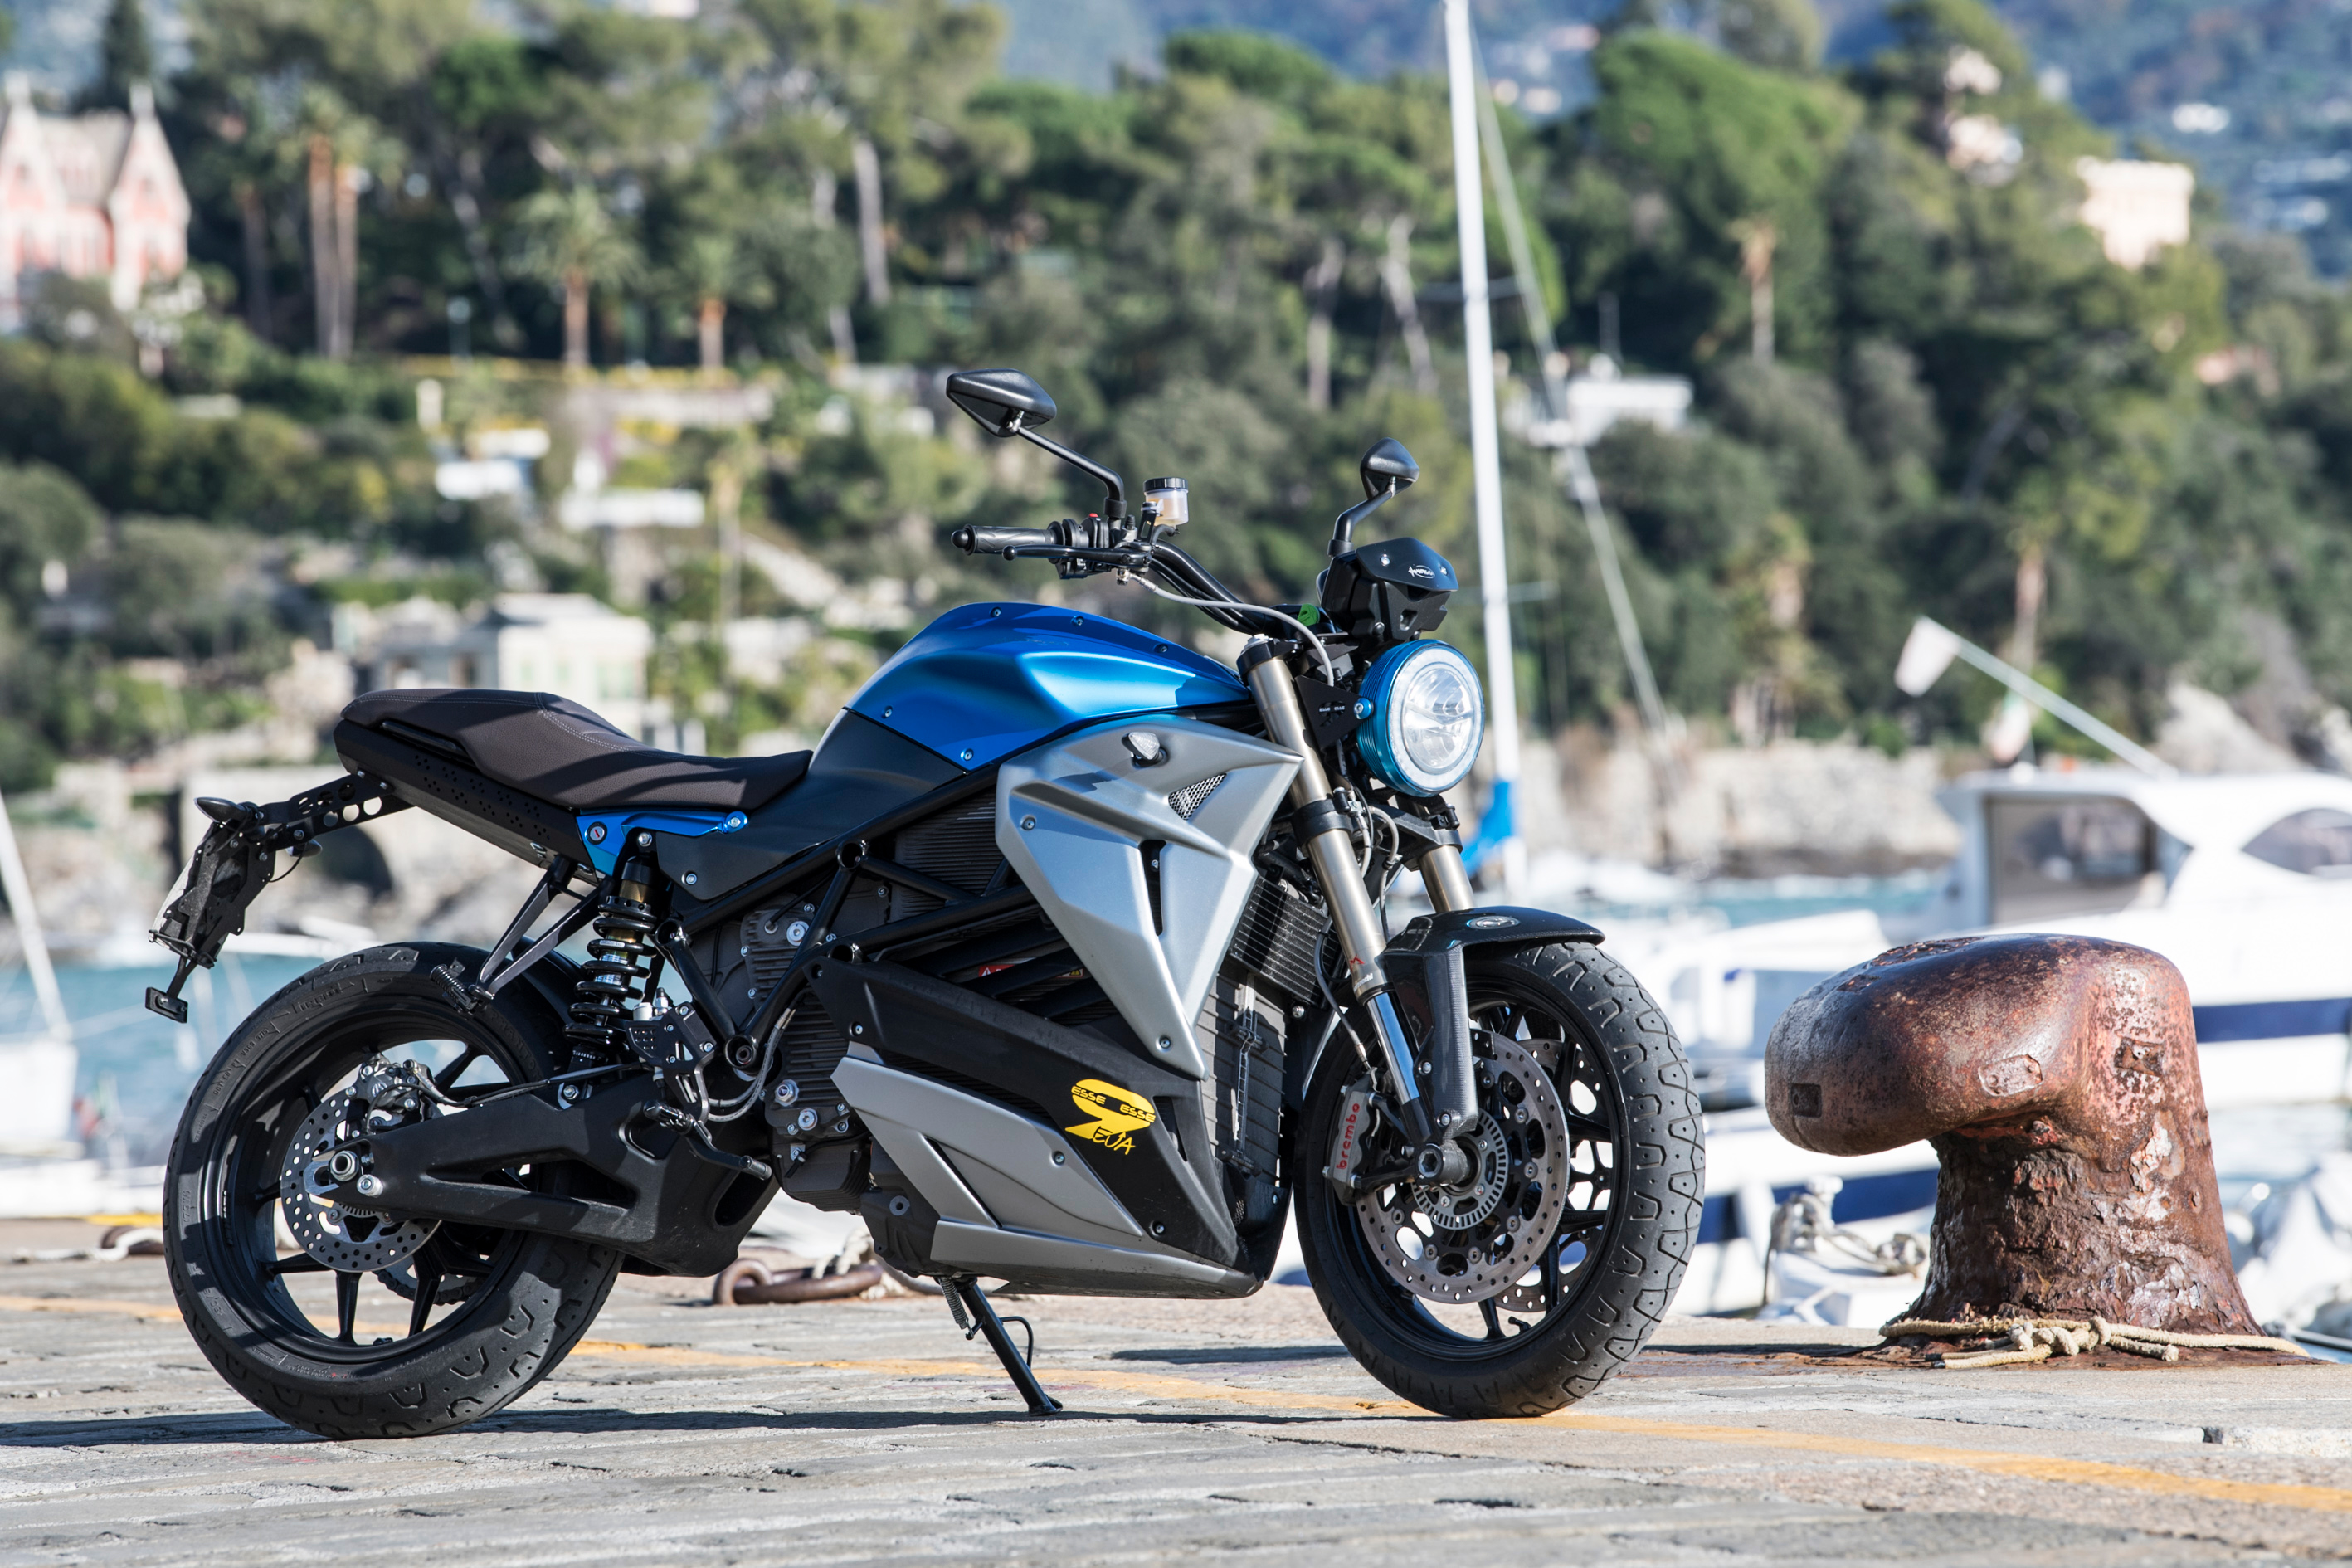 In Fact We Were Pleasantly Surprised When The Zero Beat A Gas Supermoto Tested An Fxs Against Suzuki Dr Z400sm